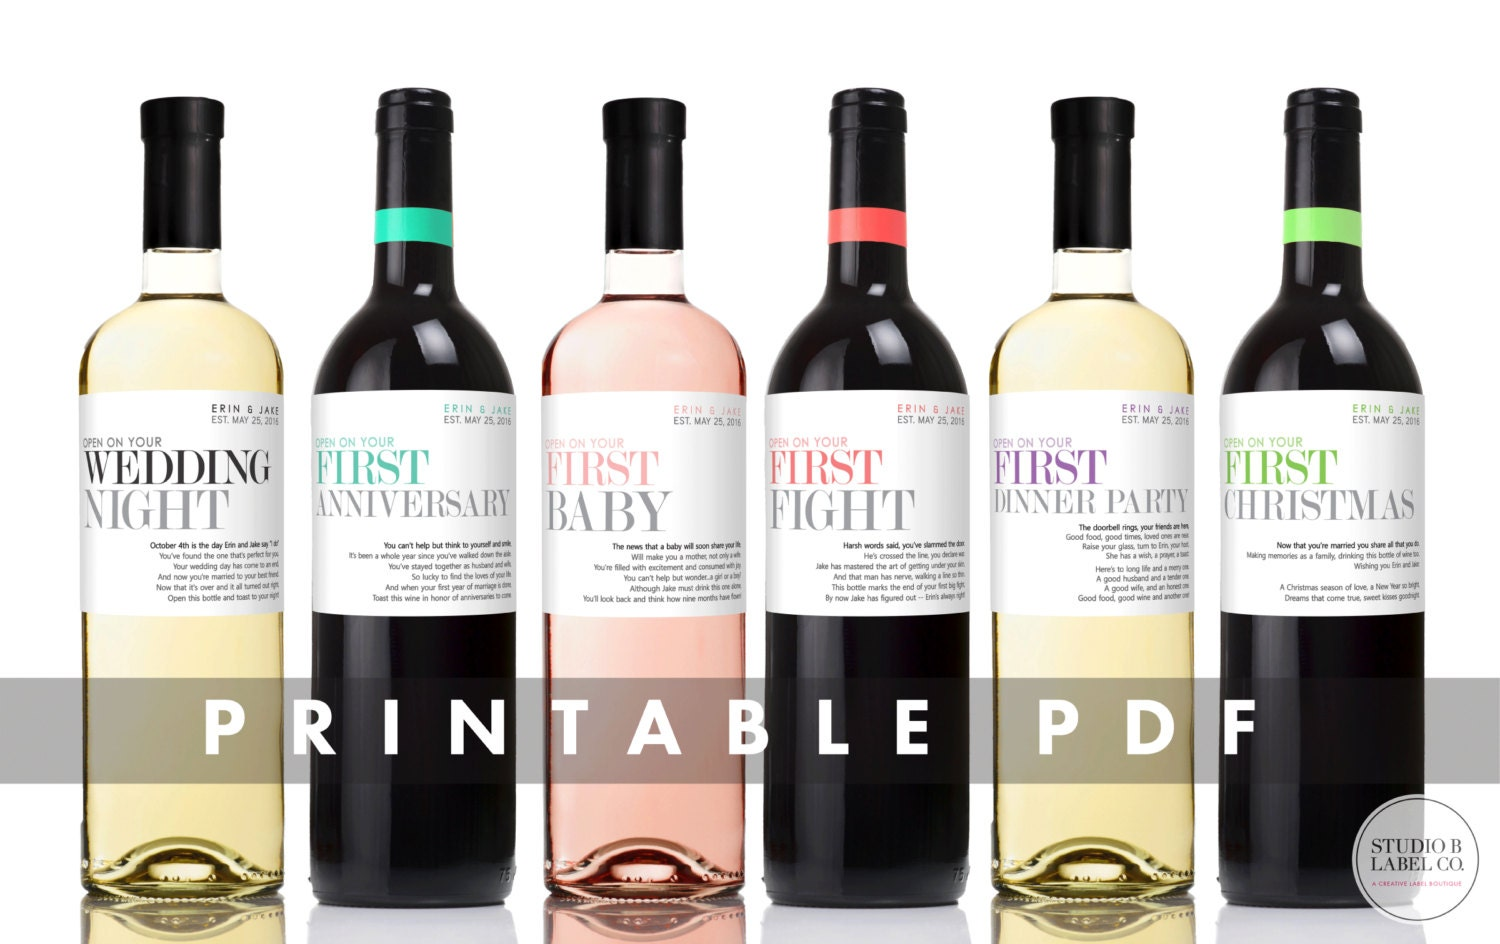 Accomplished image with regard to free printable wine labels